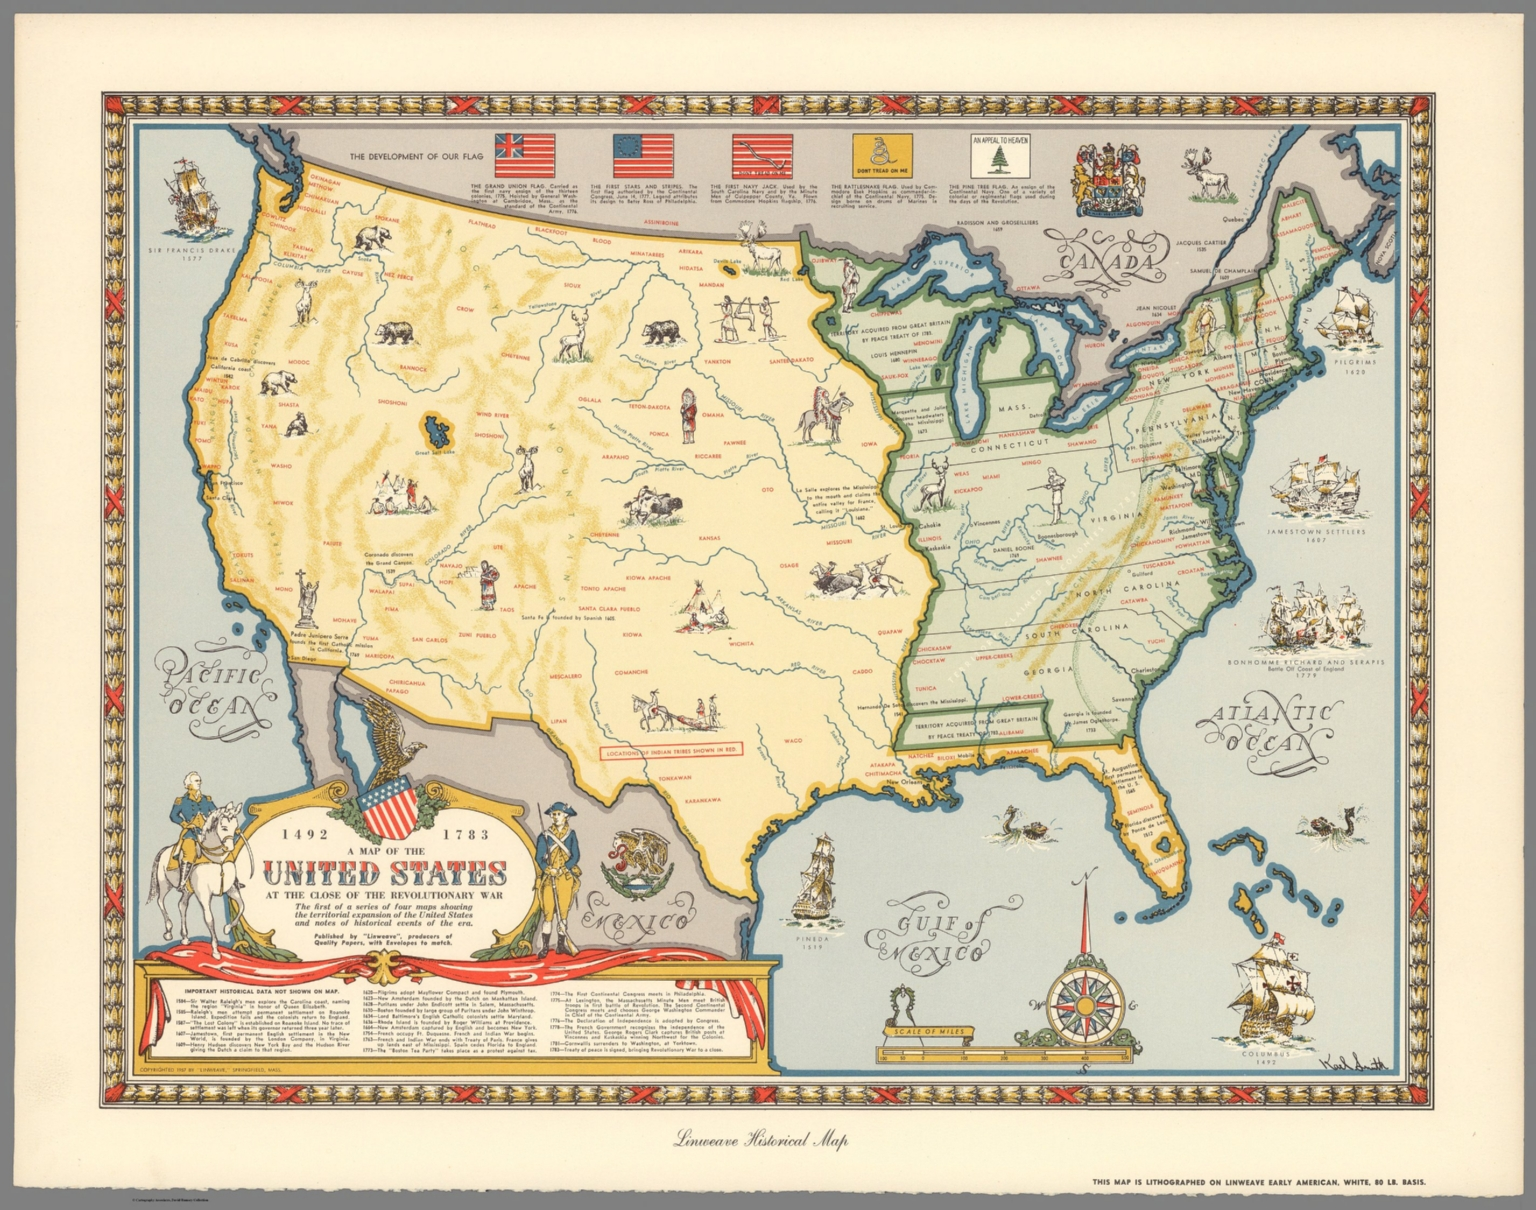 A Map Of The United States At The Close Of The Revolutionary War 1492 1783 David Rumsey Historical Map Collection